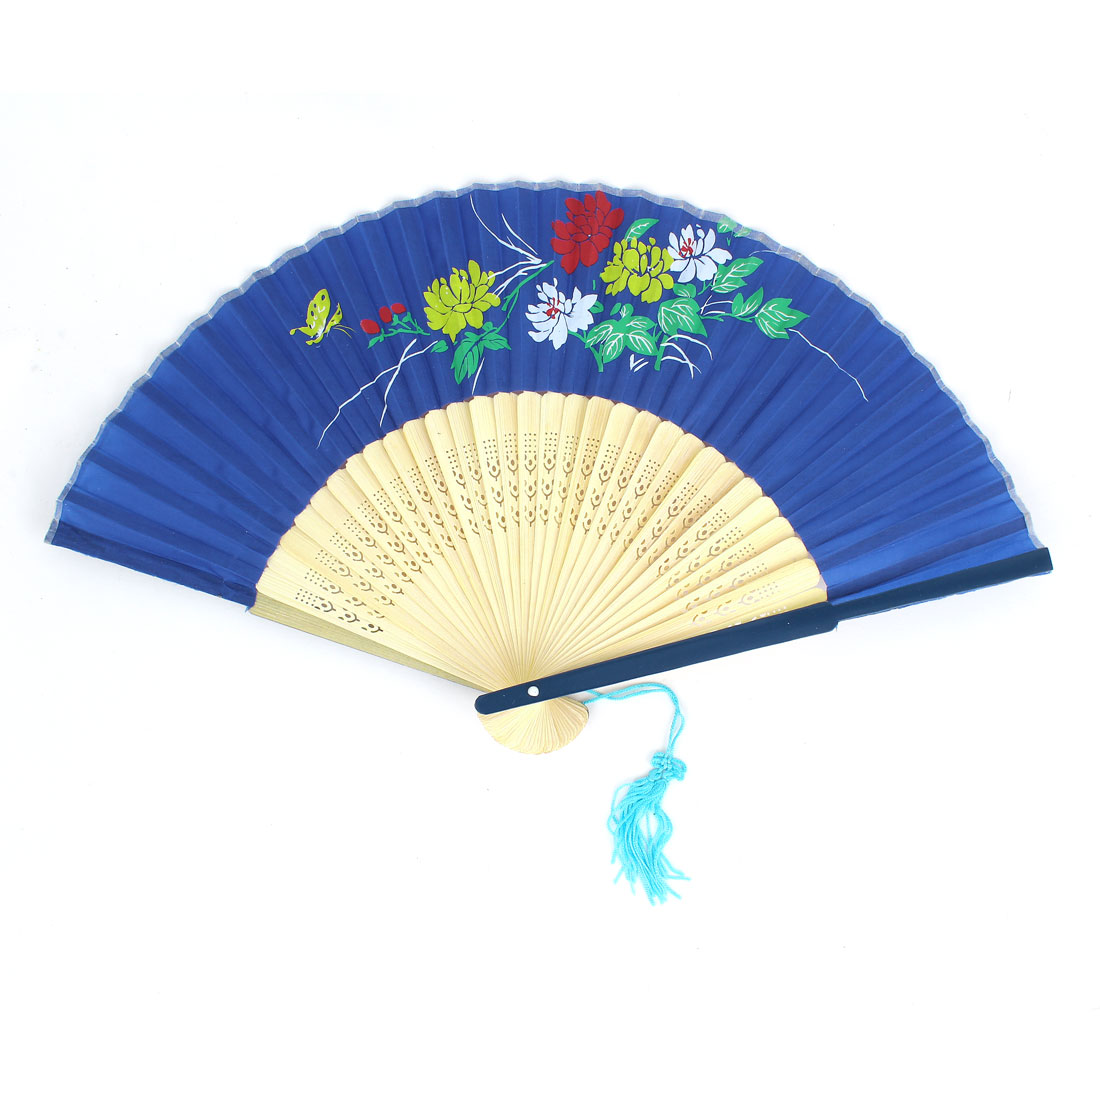 Flowers Pattern Tassels Decor Bamboo Ribs Folding Hand Fan Blue Beige